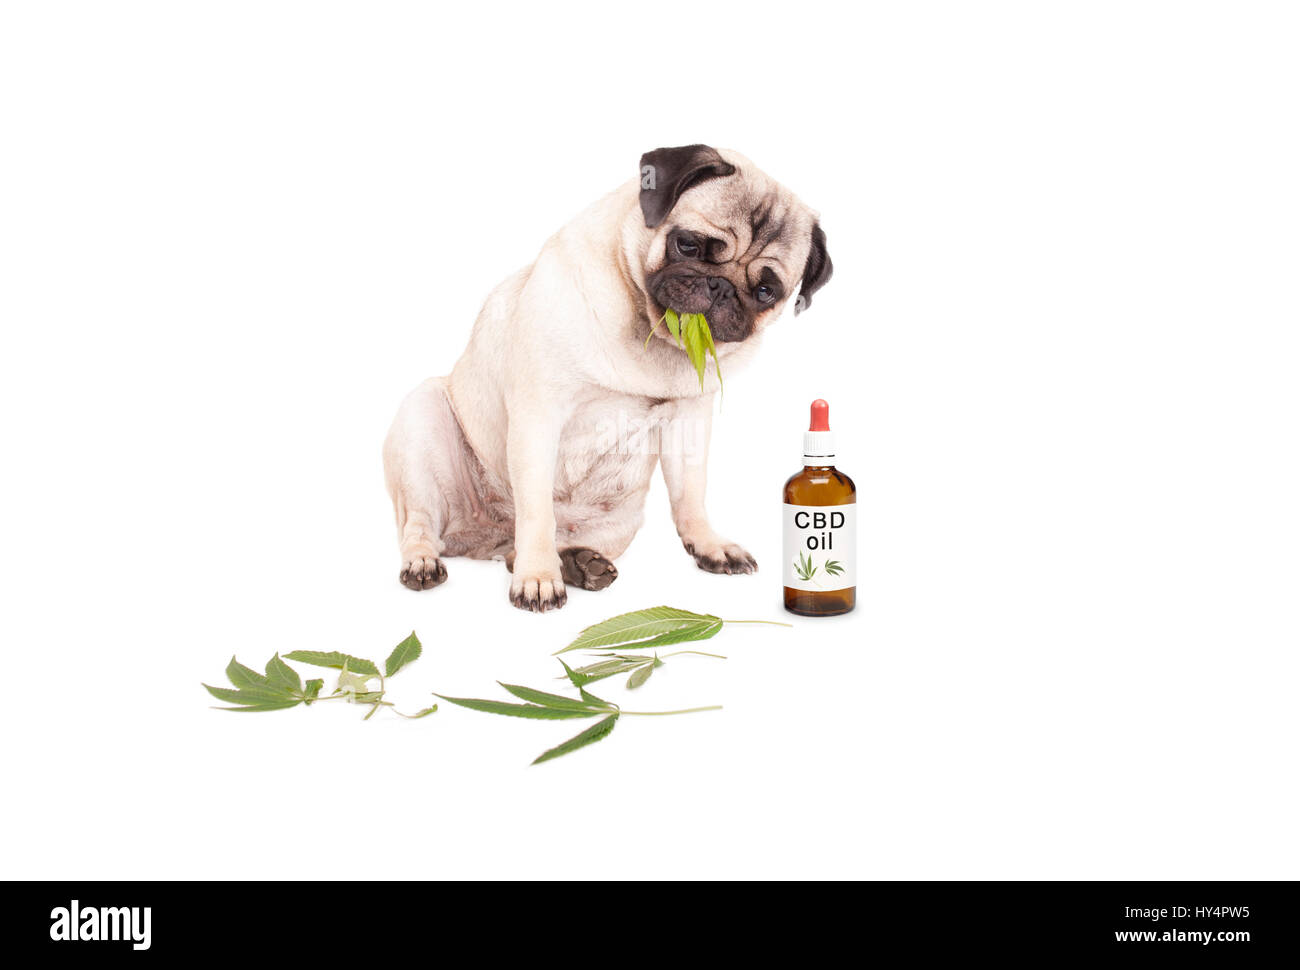 cute pug puppy pet dog eating weed, Cannabis sativa, leaves sitting next to dropper bottle of CBD oil for animals, - Stock Image